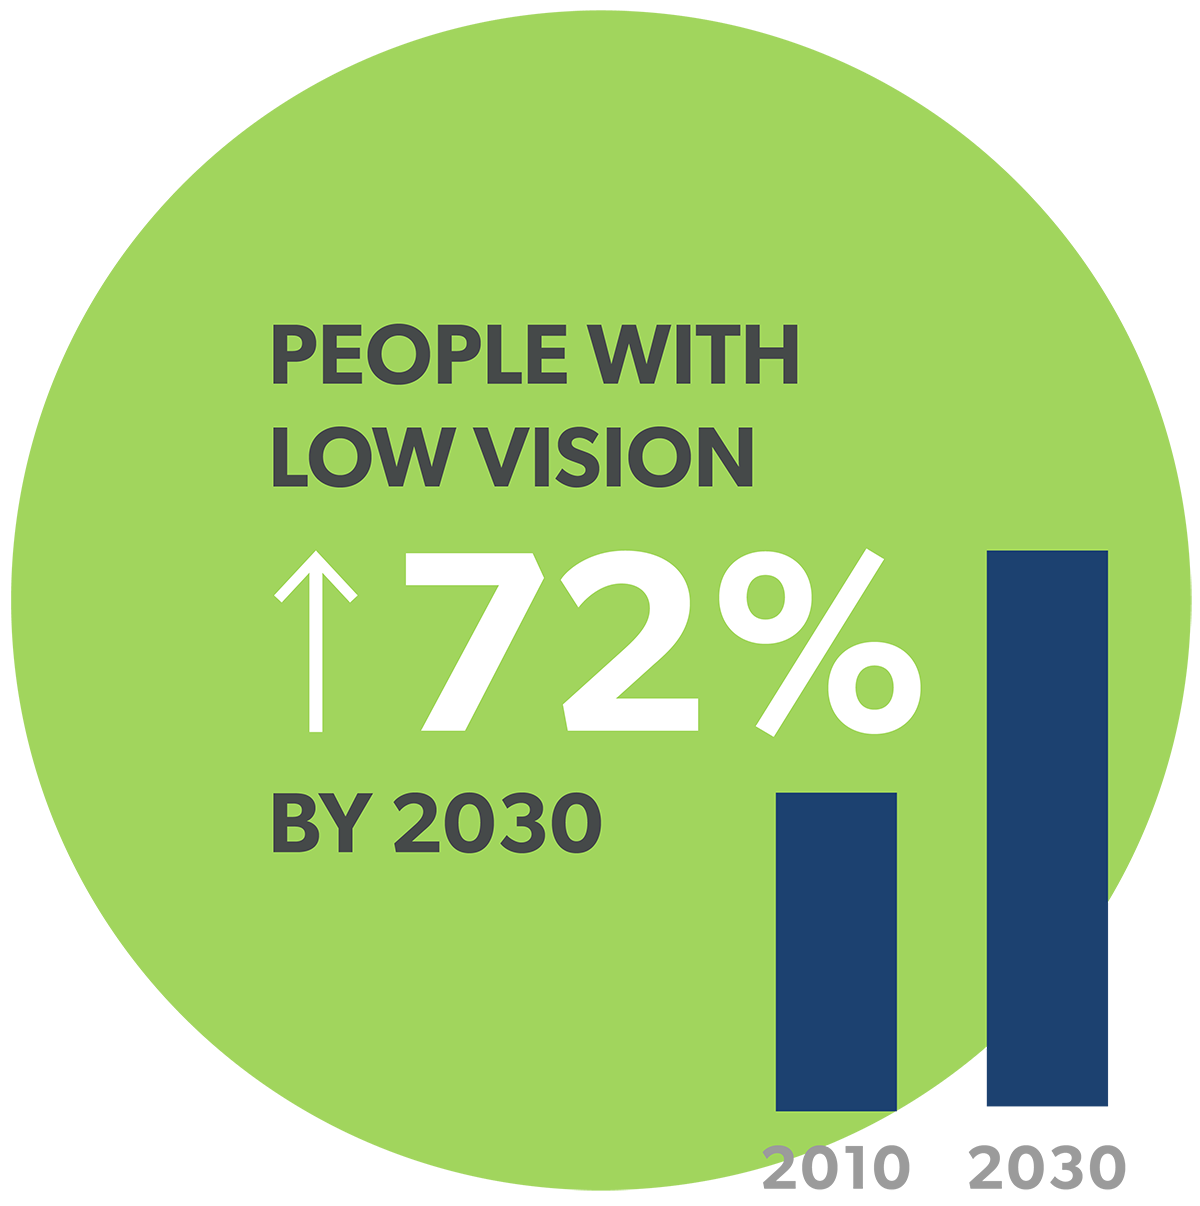 People with low vision at over 72% by 2030.